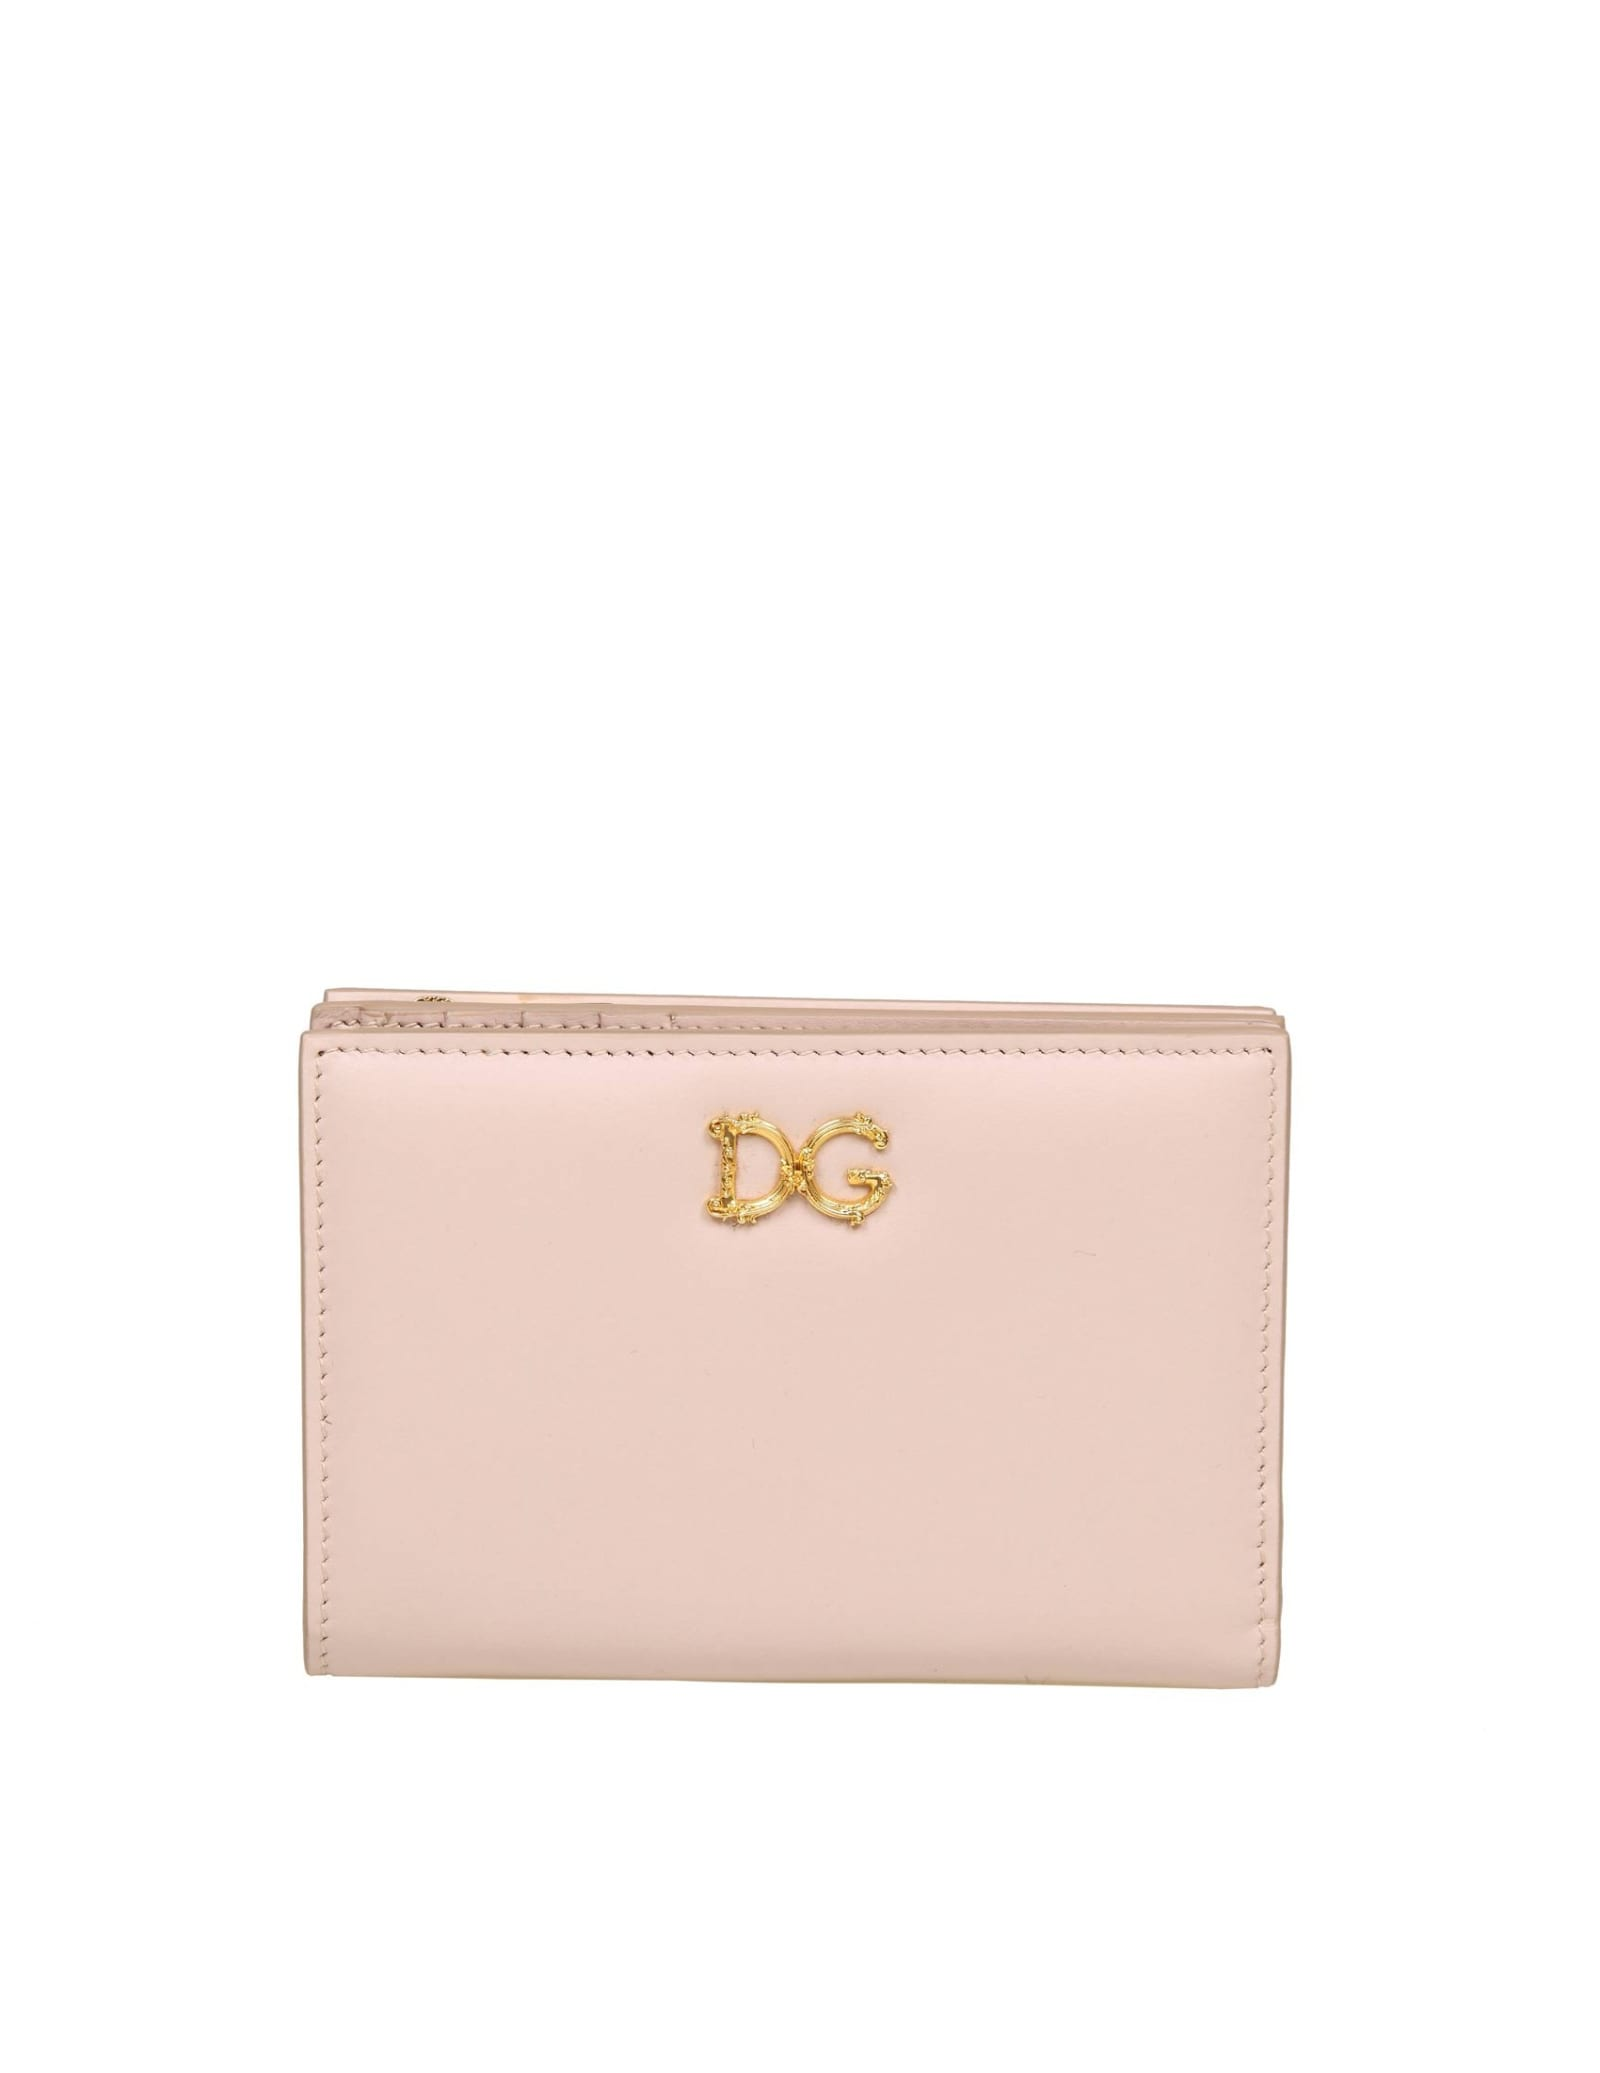 Dolce & Gabbana Small Wallet In Powder Color Leather